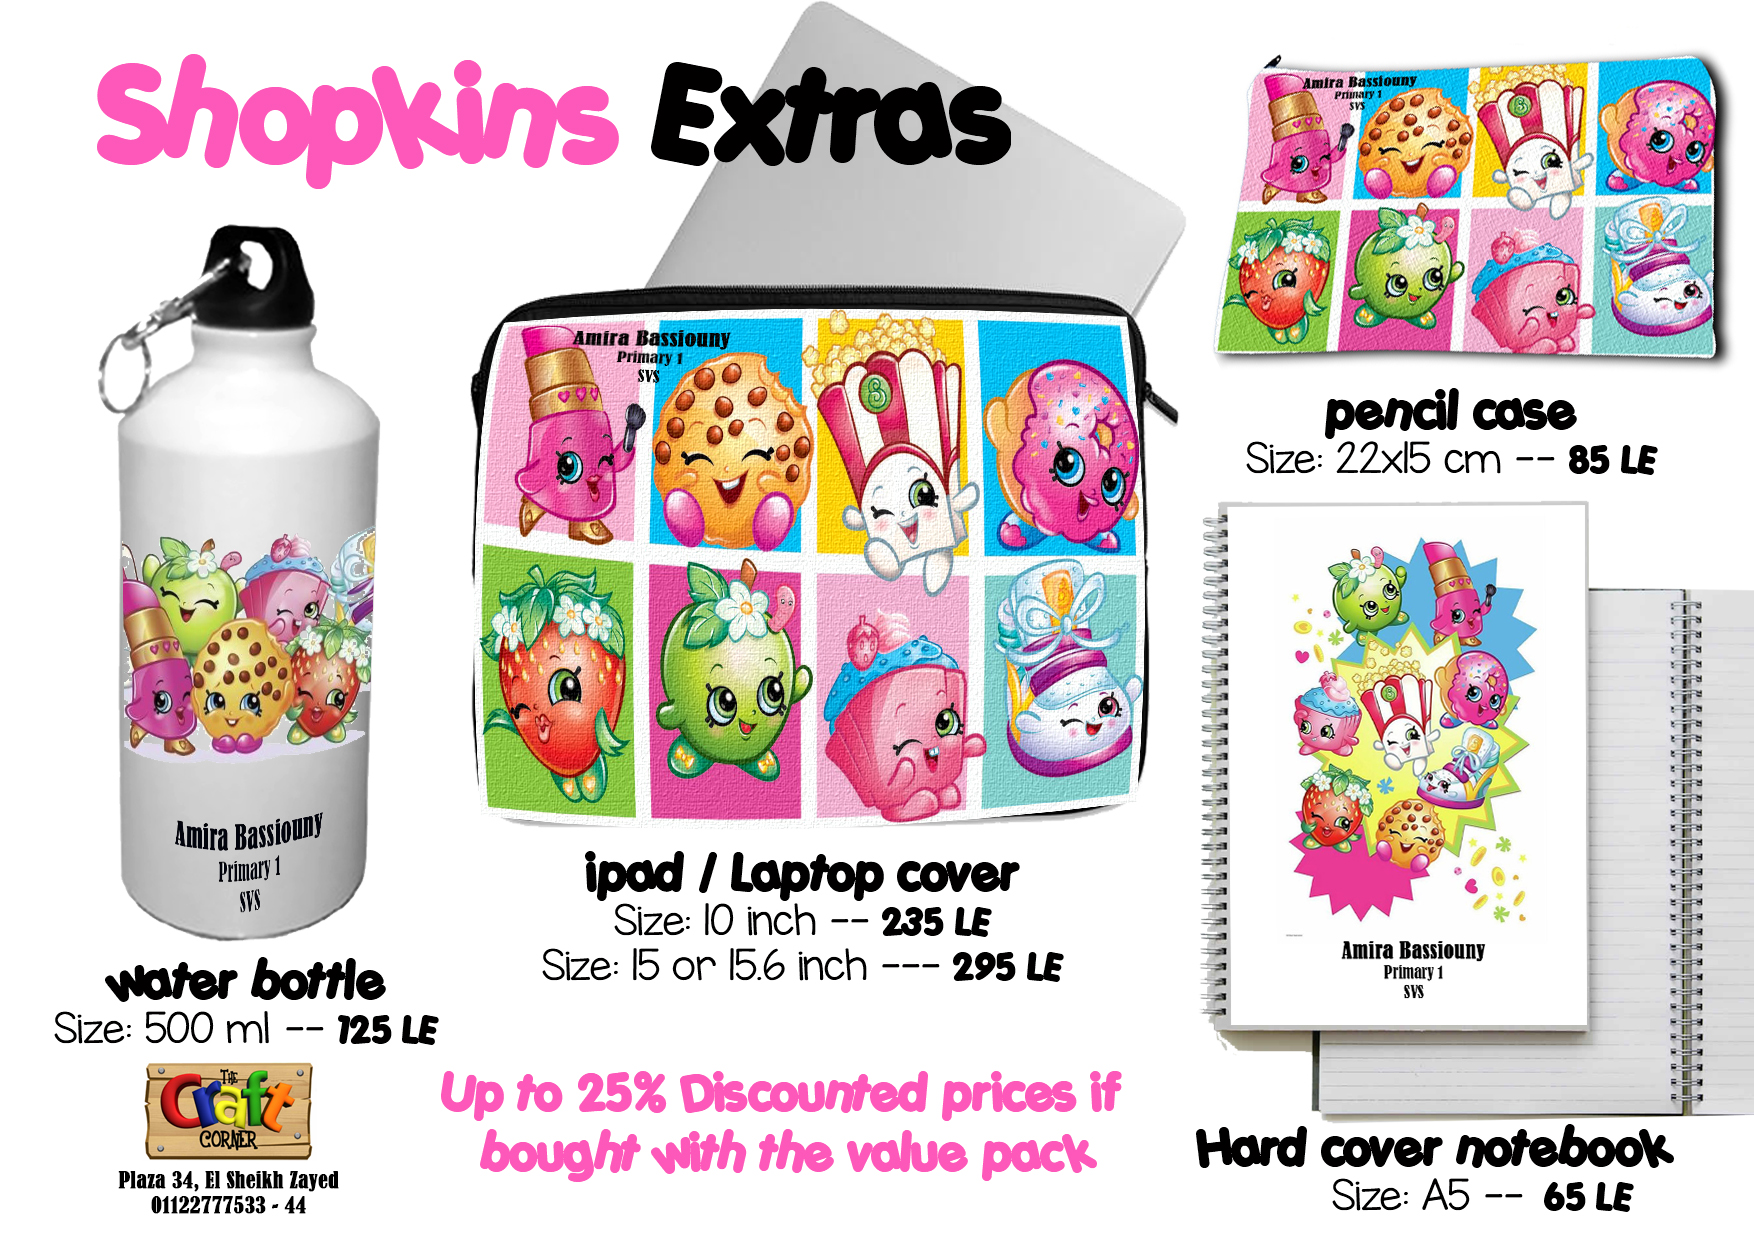 shopkins Extras